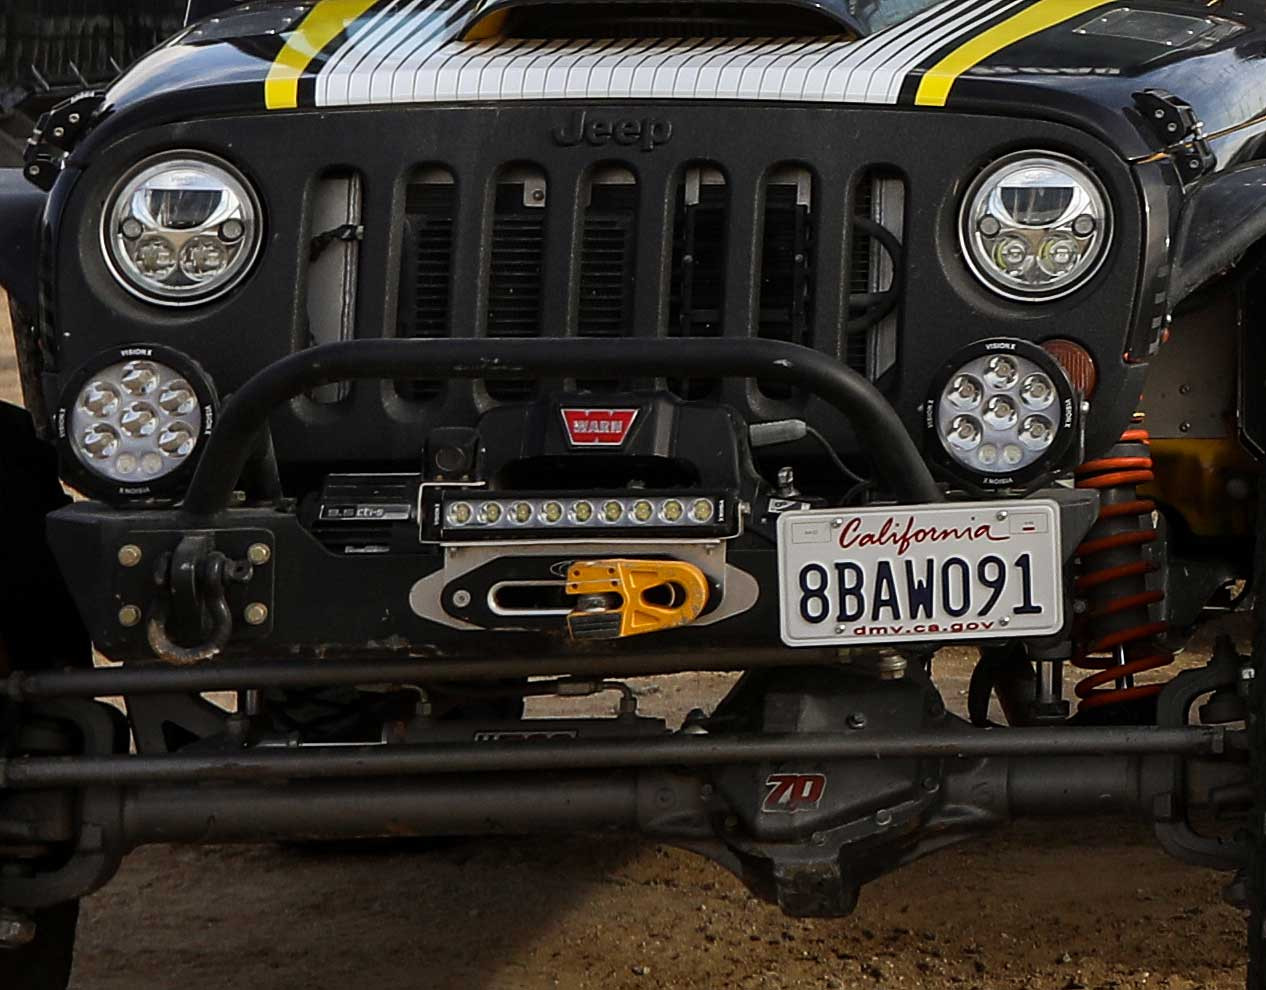 Shown here on the GenRight Terremoto Jeep